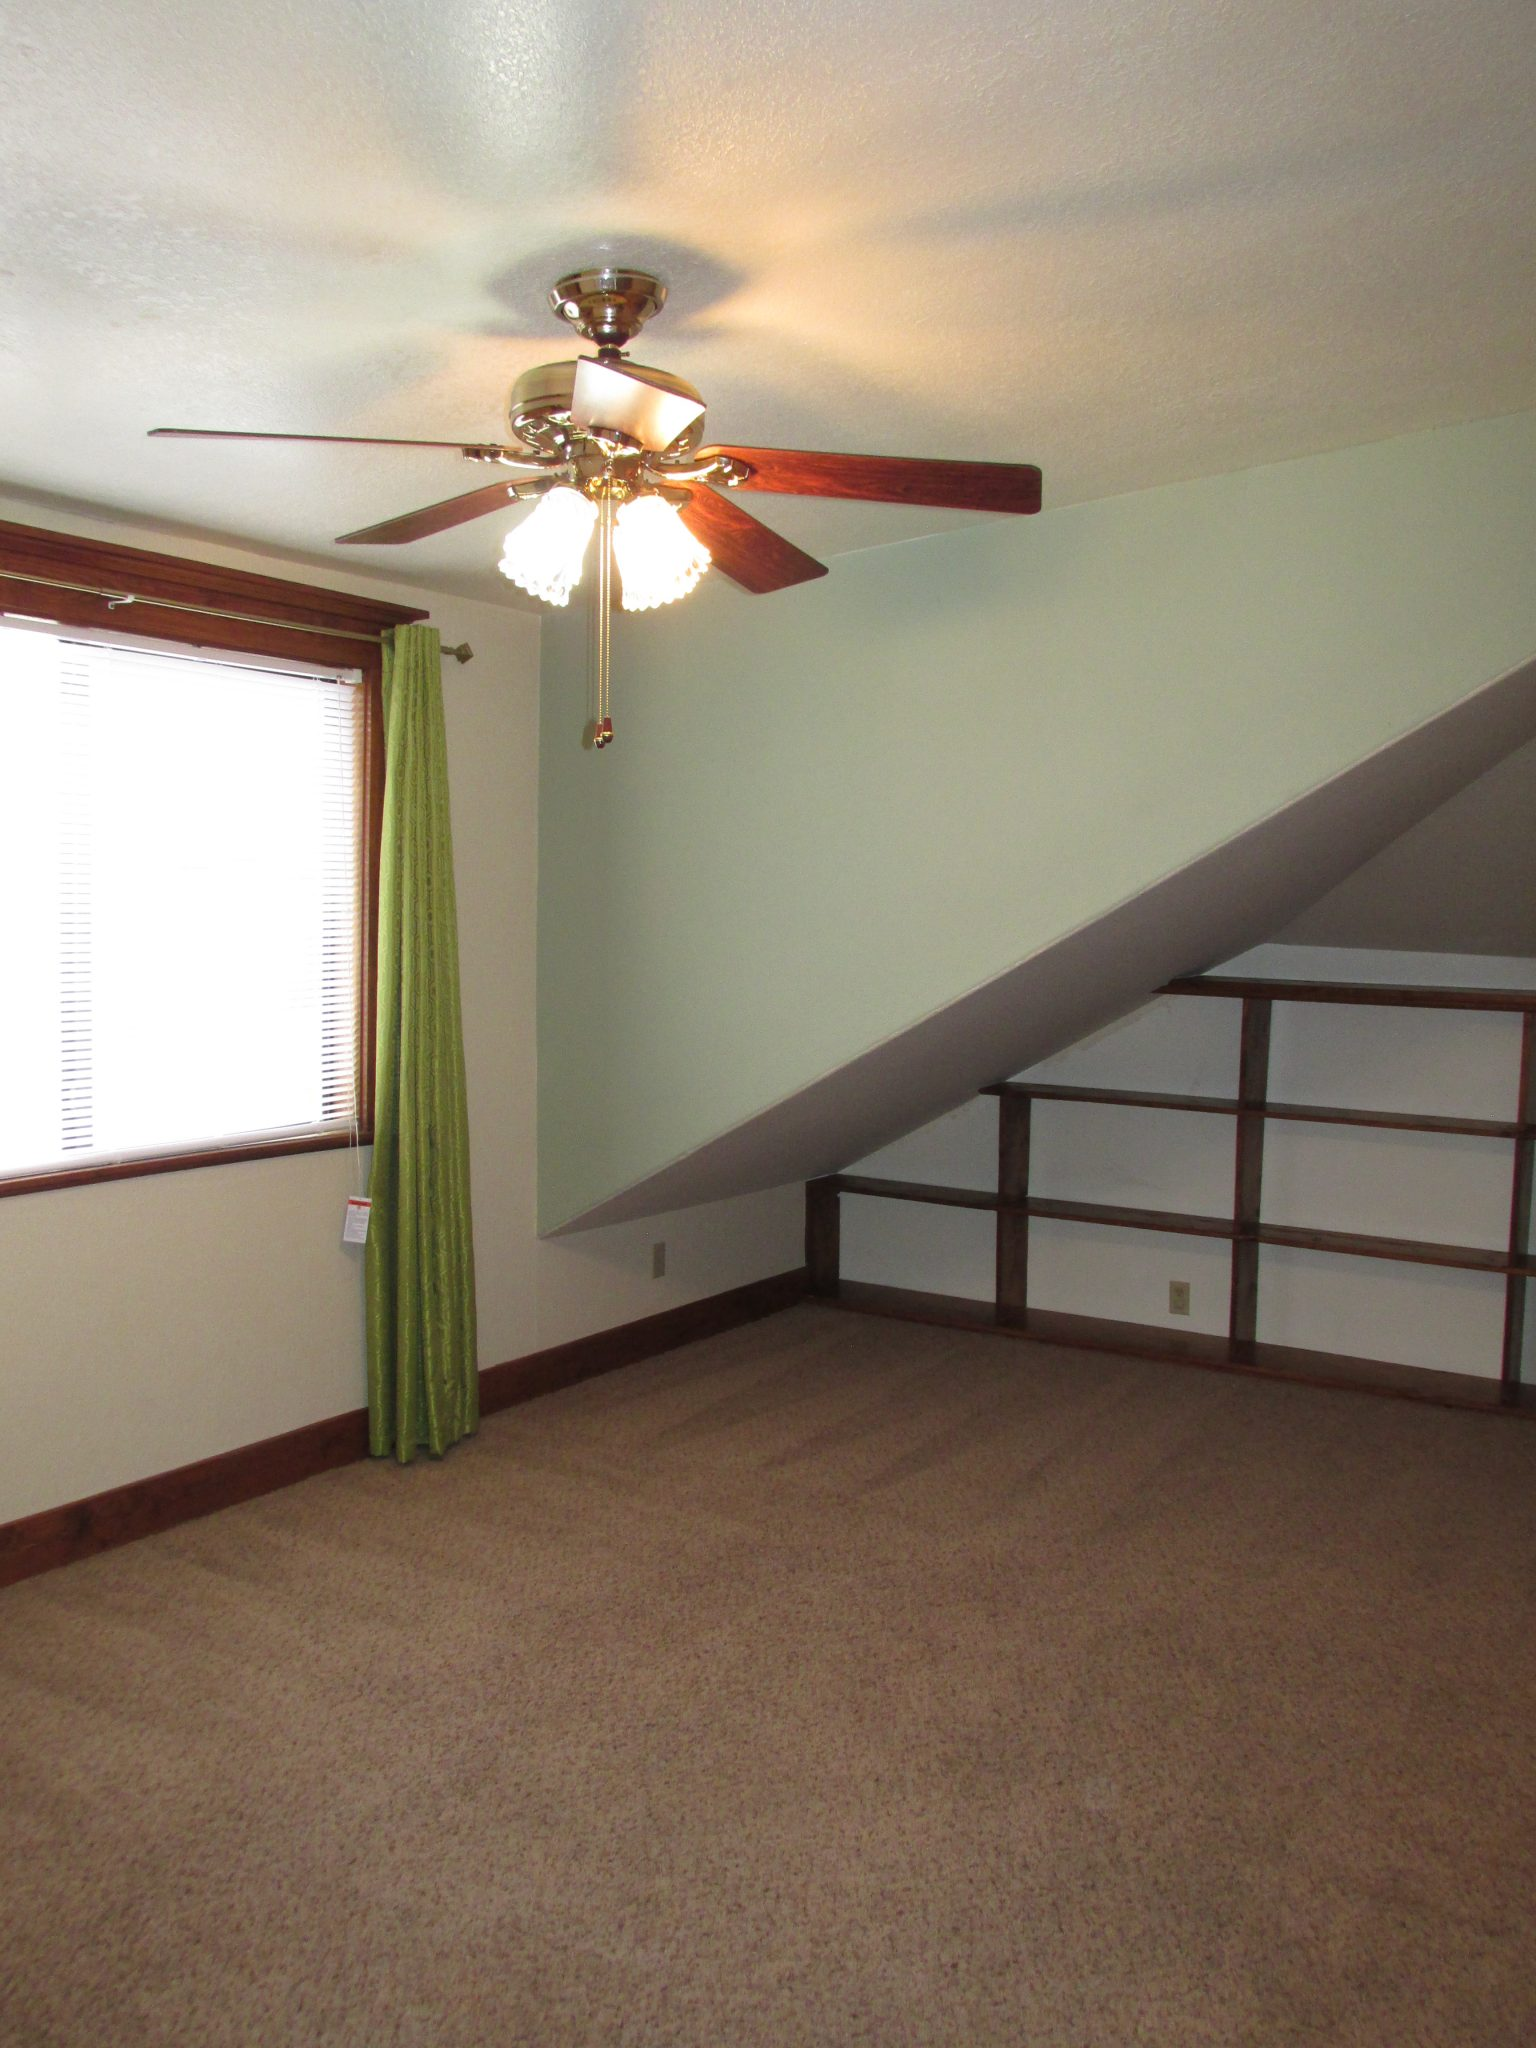 400 W. Las Cruces Ave. (Loft)